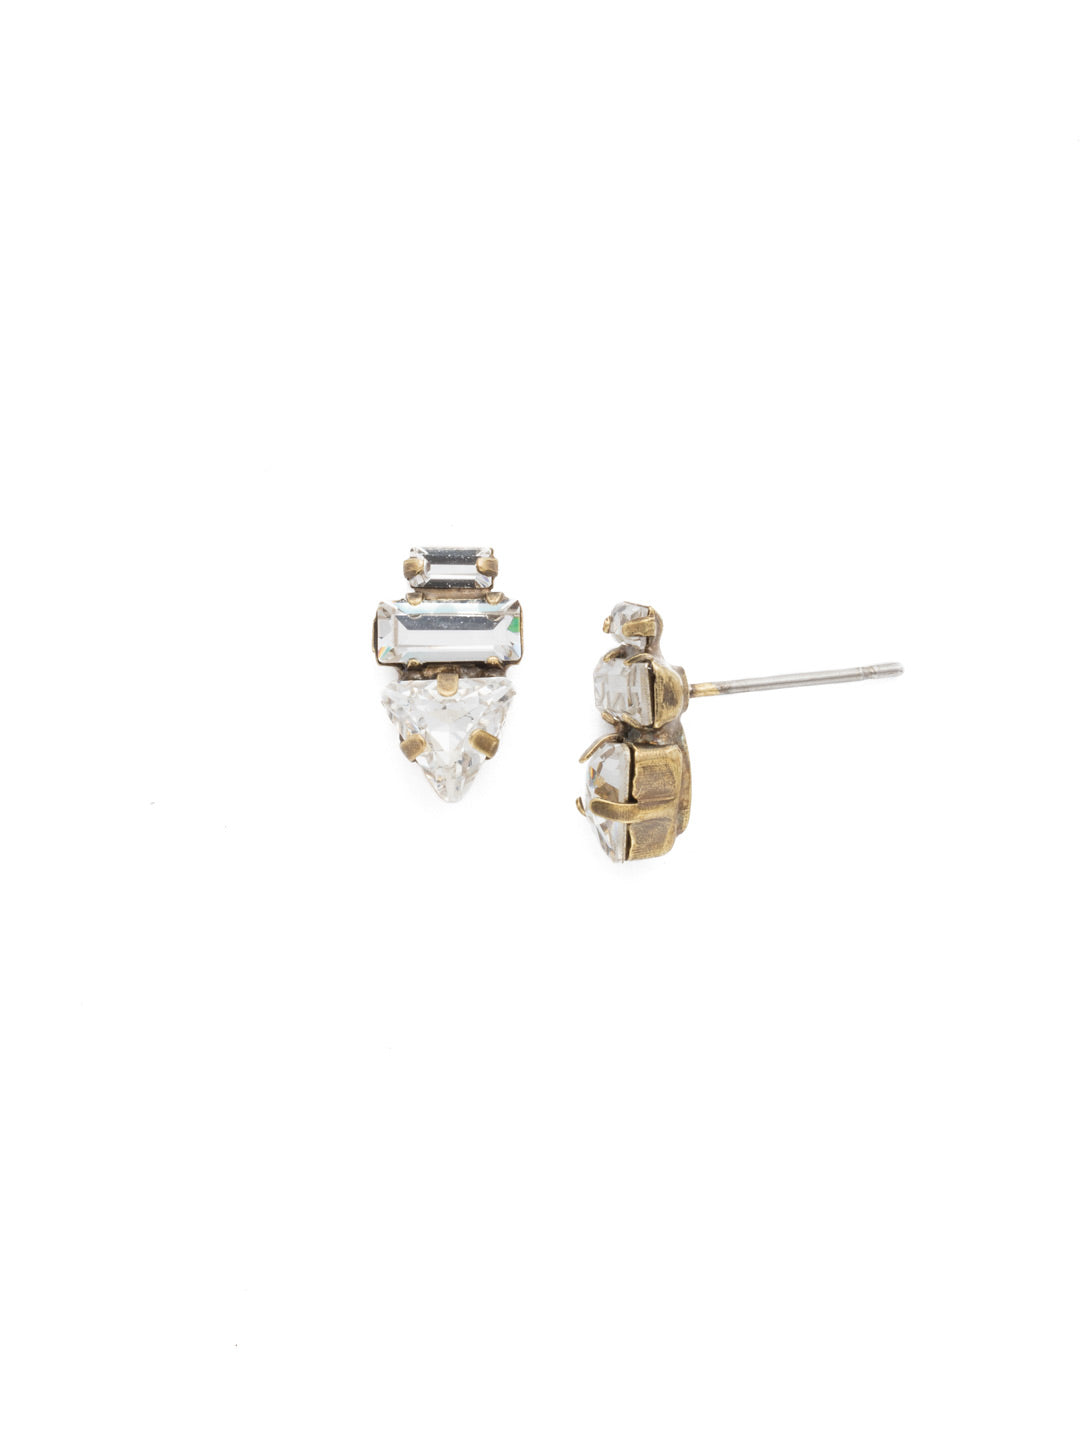 Triple Stack Stud Earrings - EDN104AGCRY